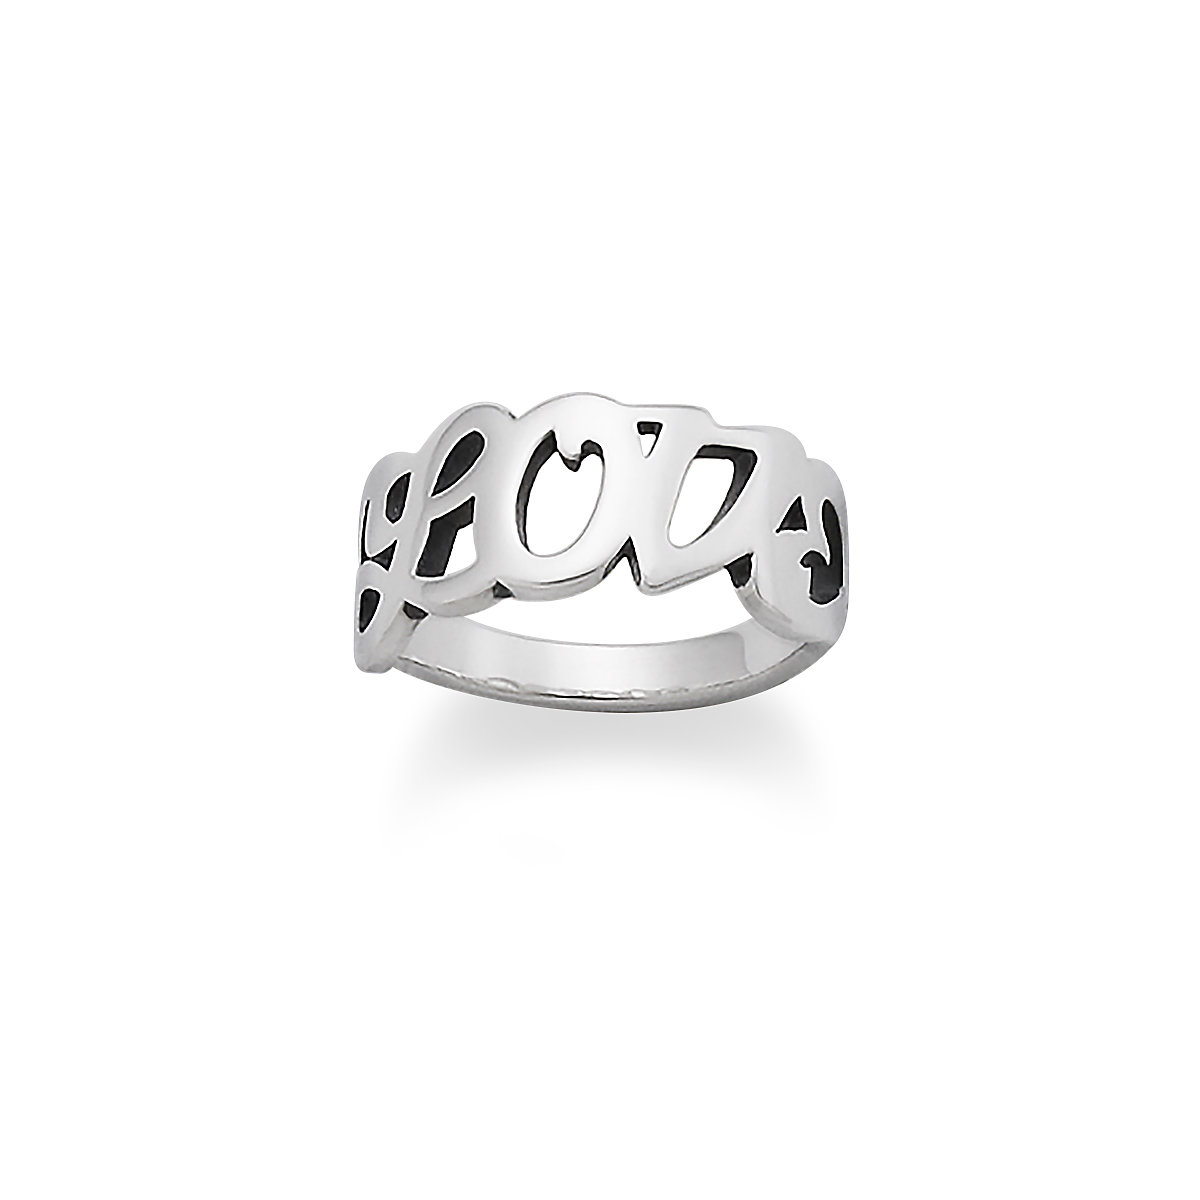 womans with image ring love tungsten gold engagement carbide engraved wedding i band you rings jewellery